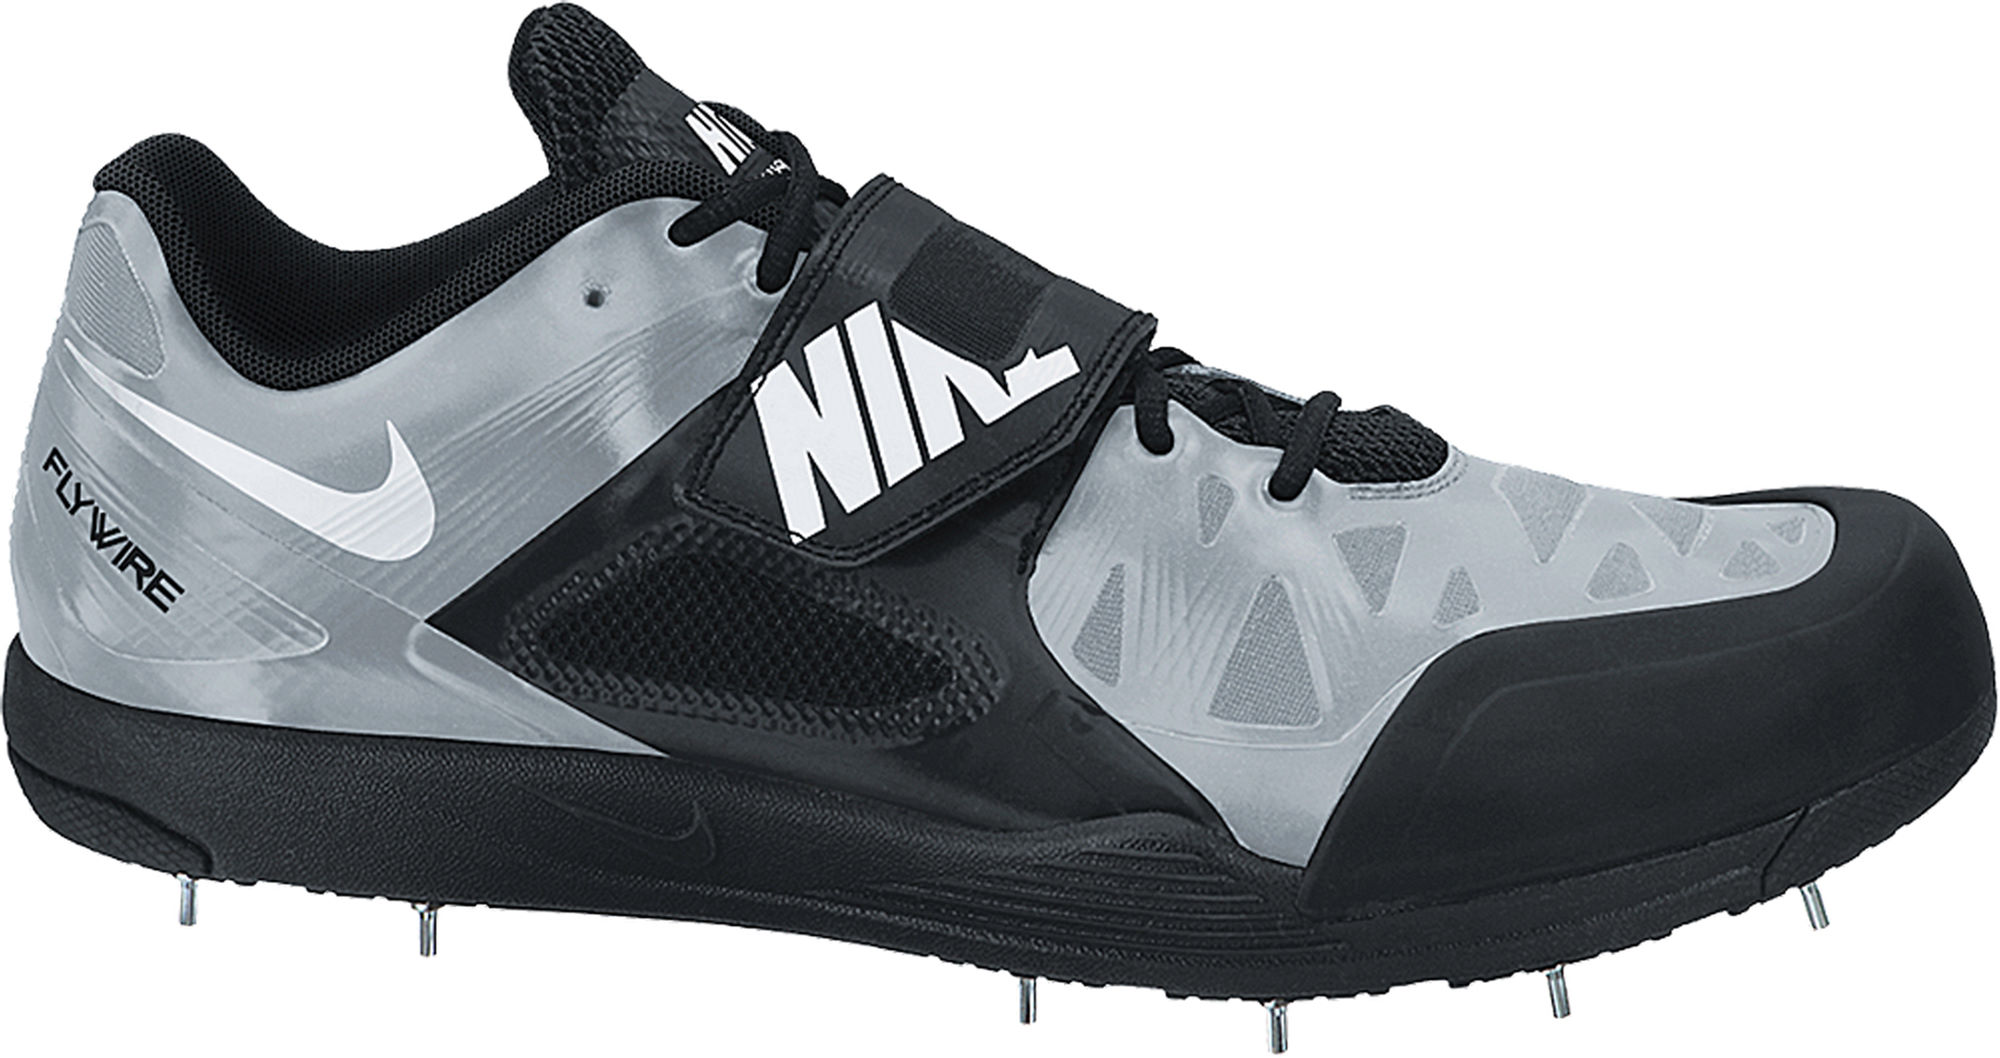 Track Shoes Without Spikes Nike